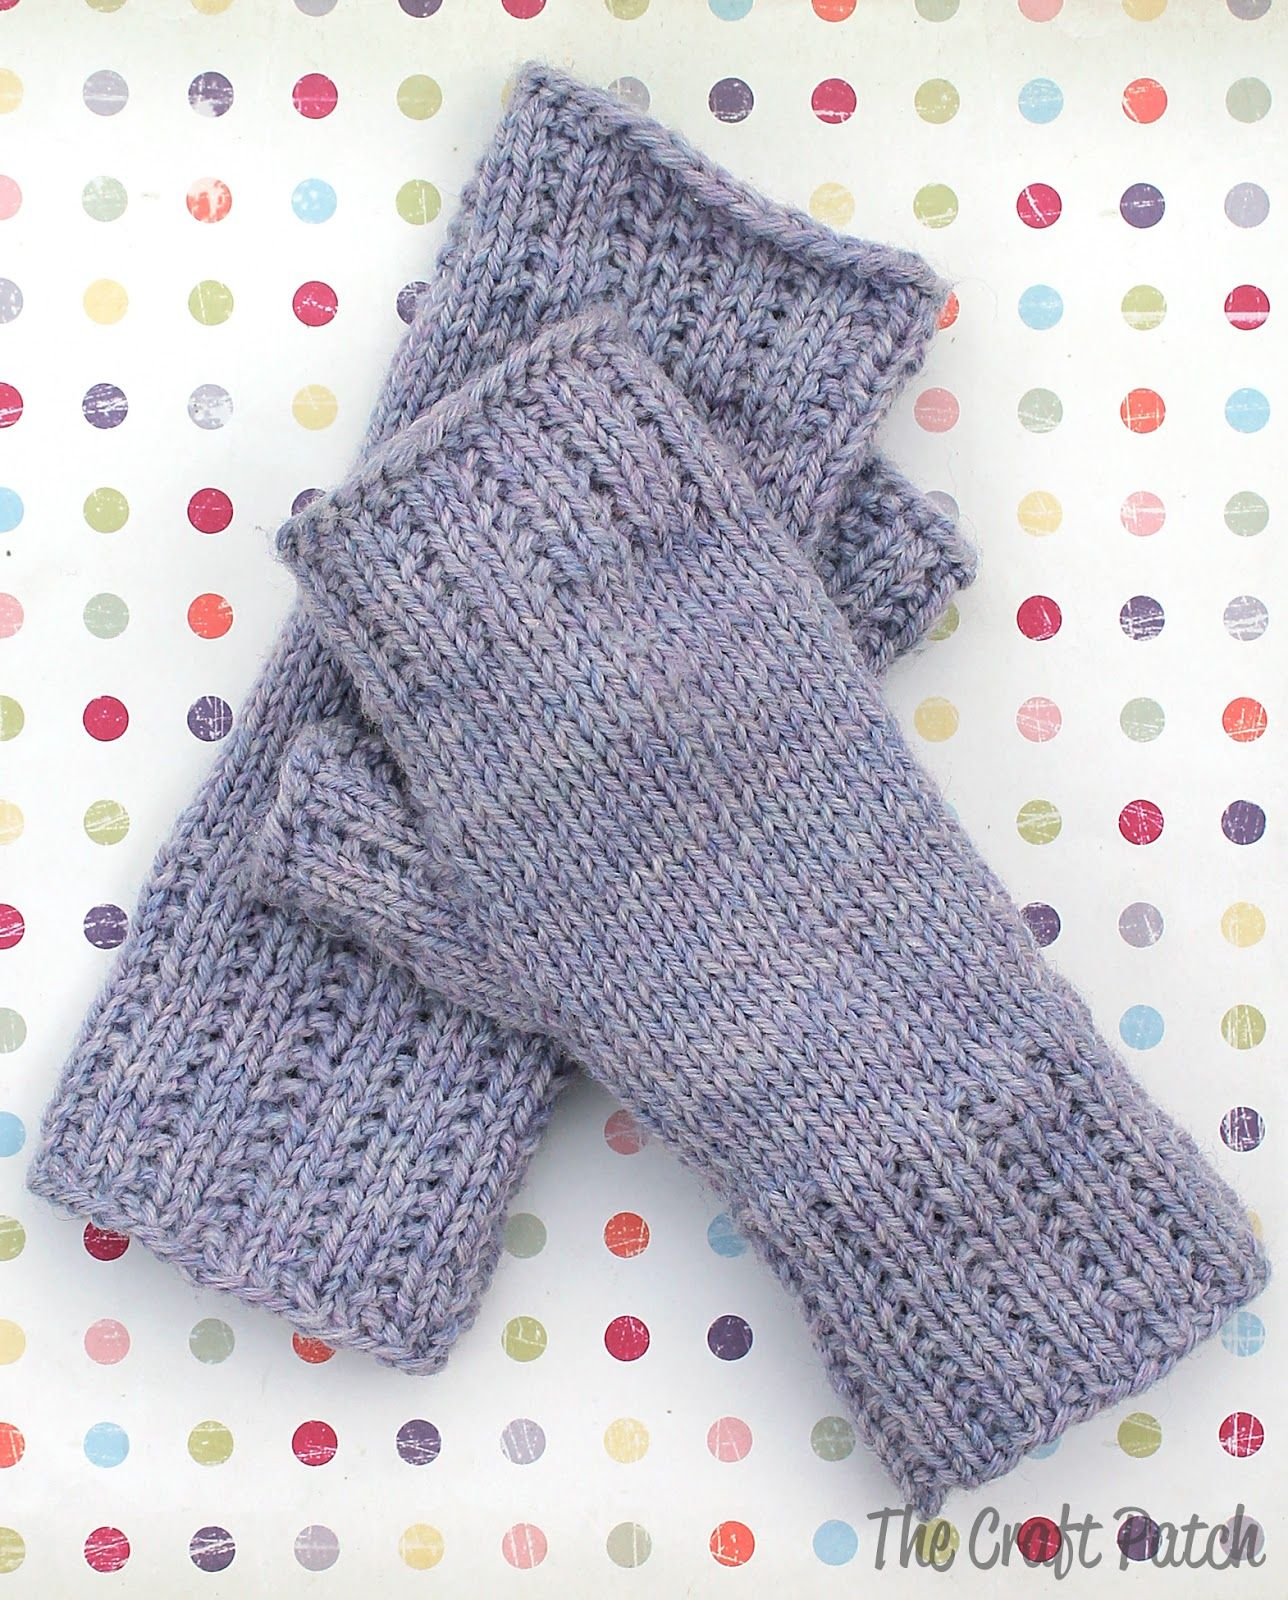 Fingerless Mitts Worsted Weight Yarn Project | Вязание | Pinterest ...